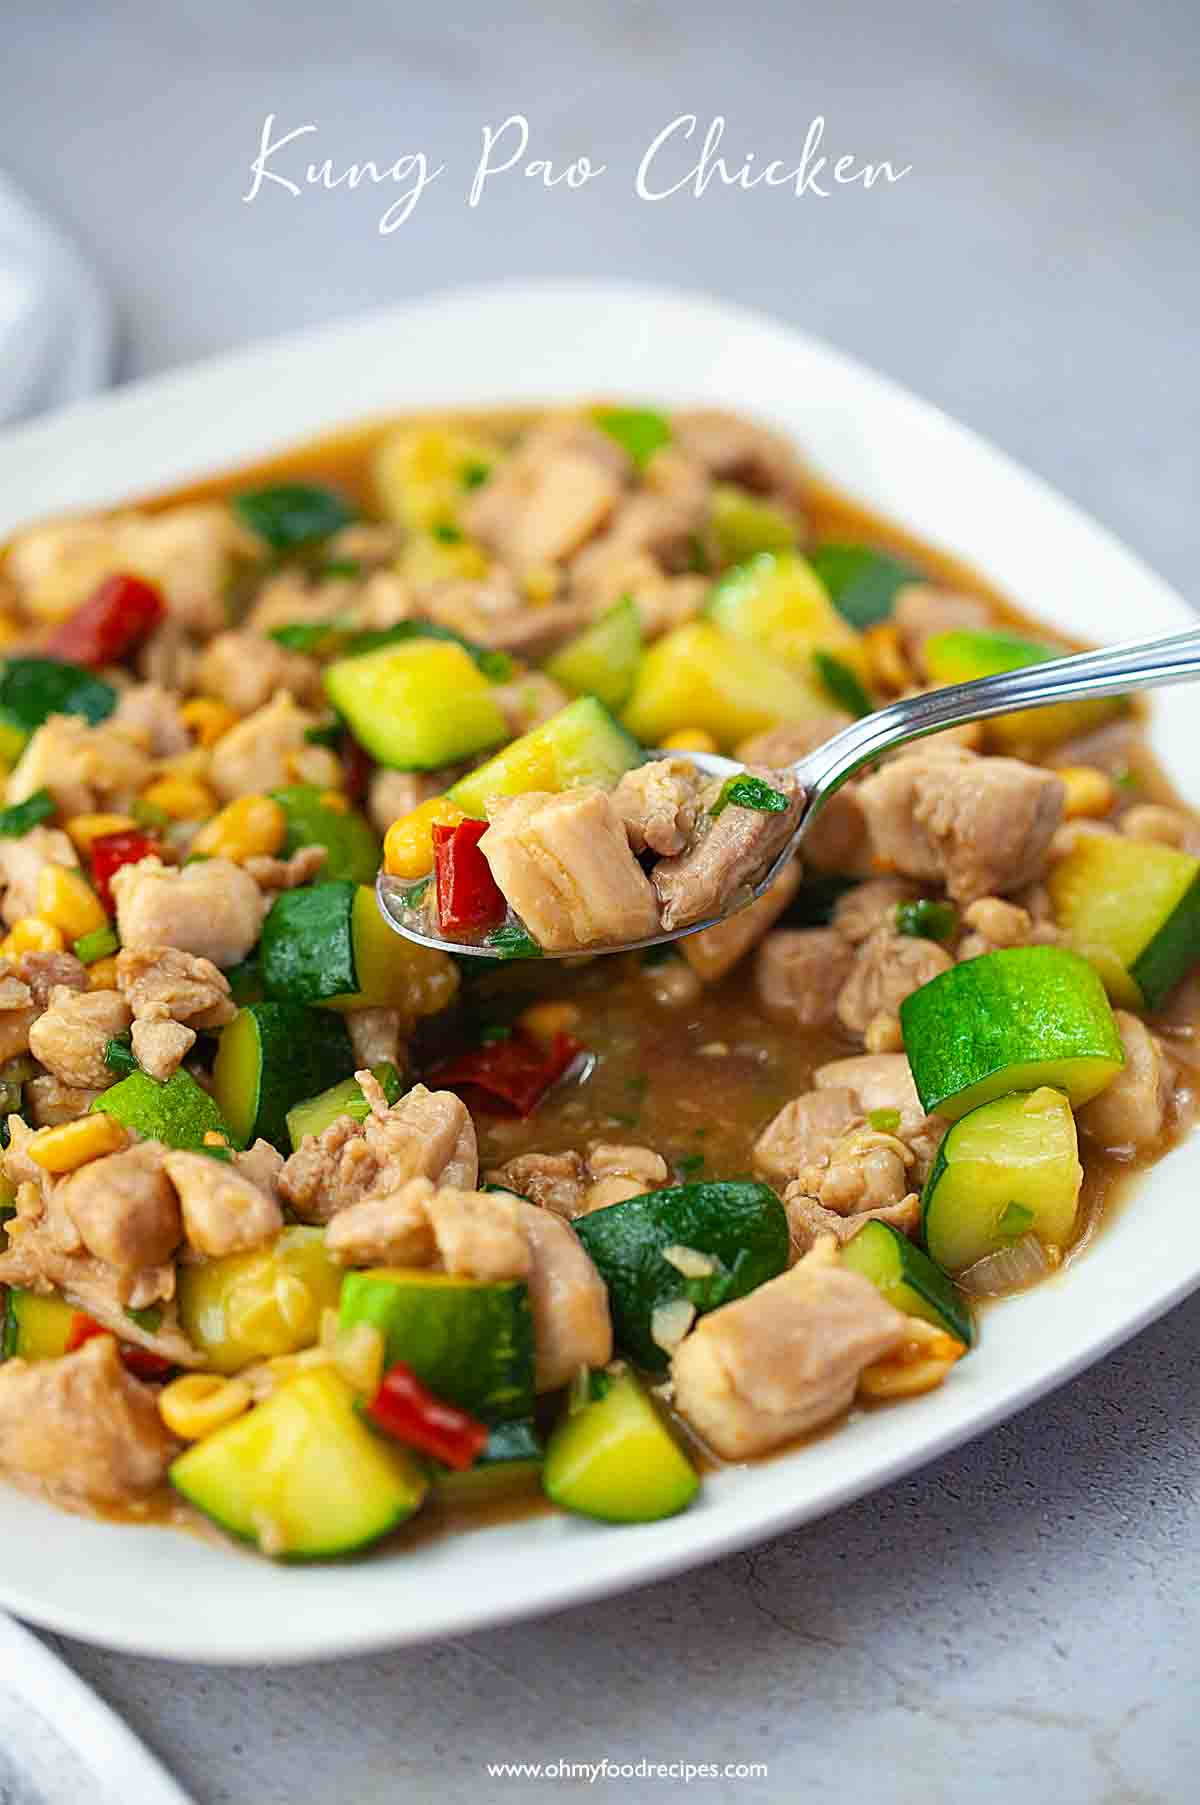 Chinese Kung pao chicken dish with a spoon